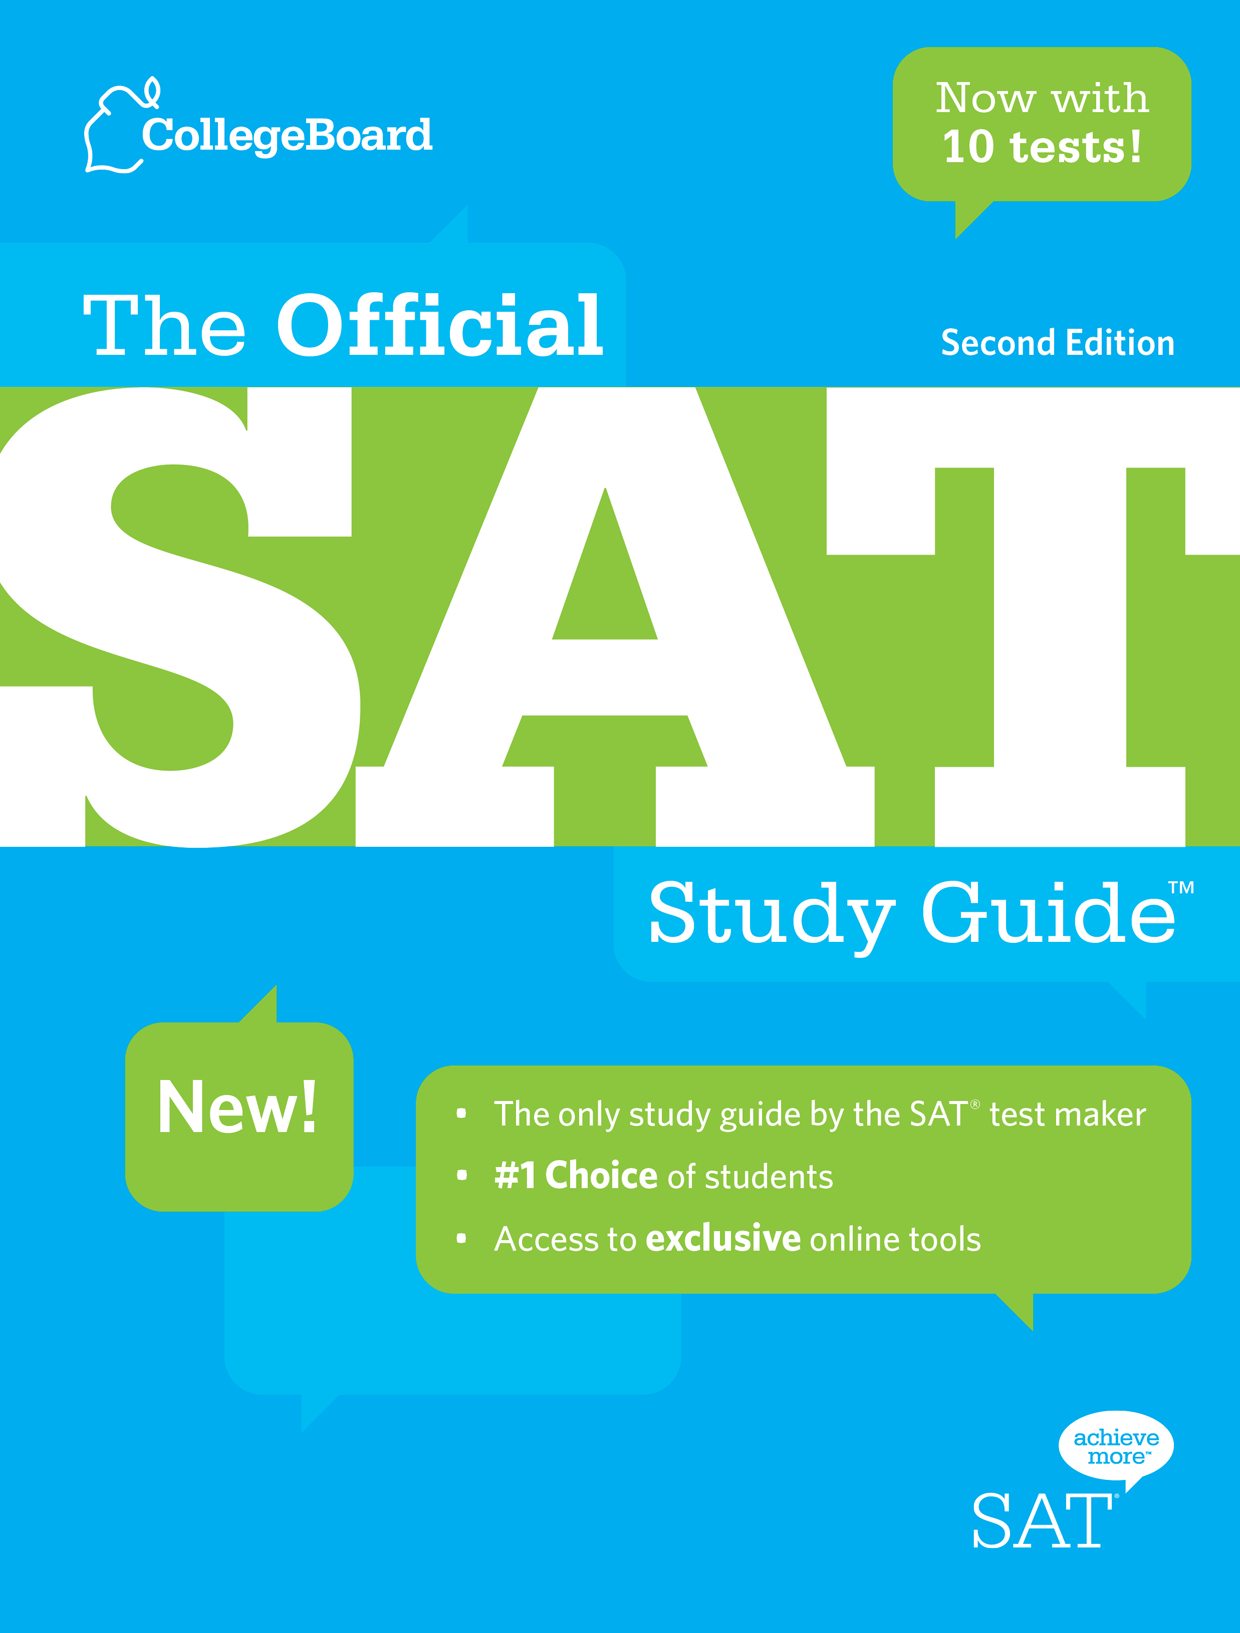 The Best Way to Use The Official SAT Study Guide